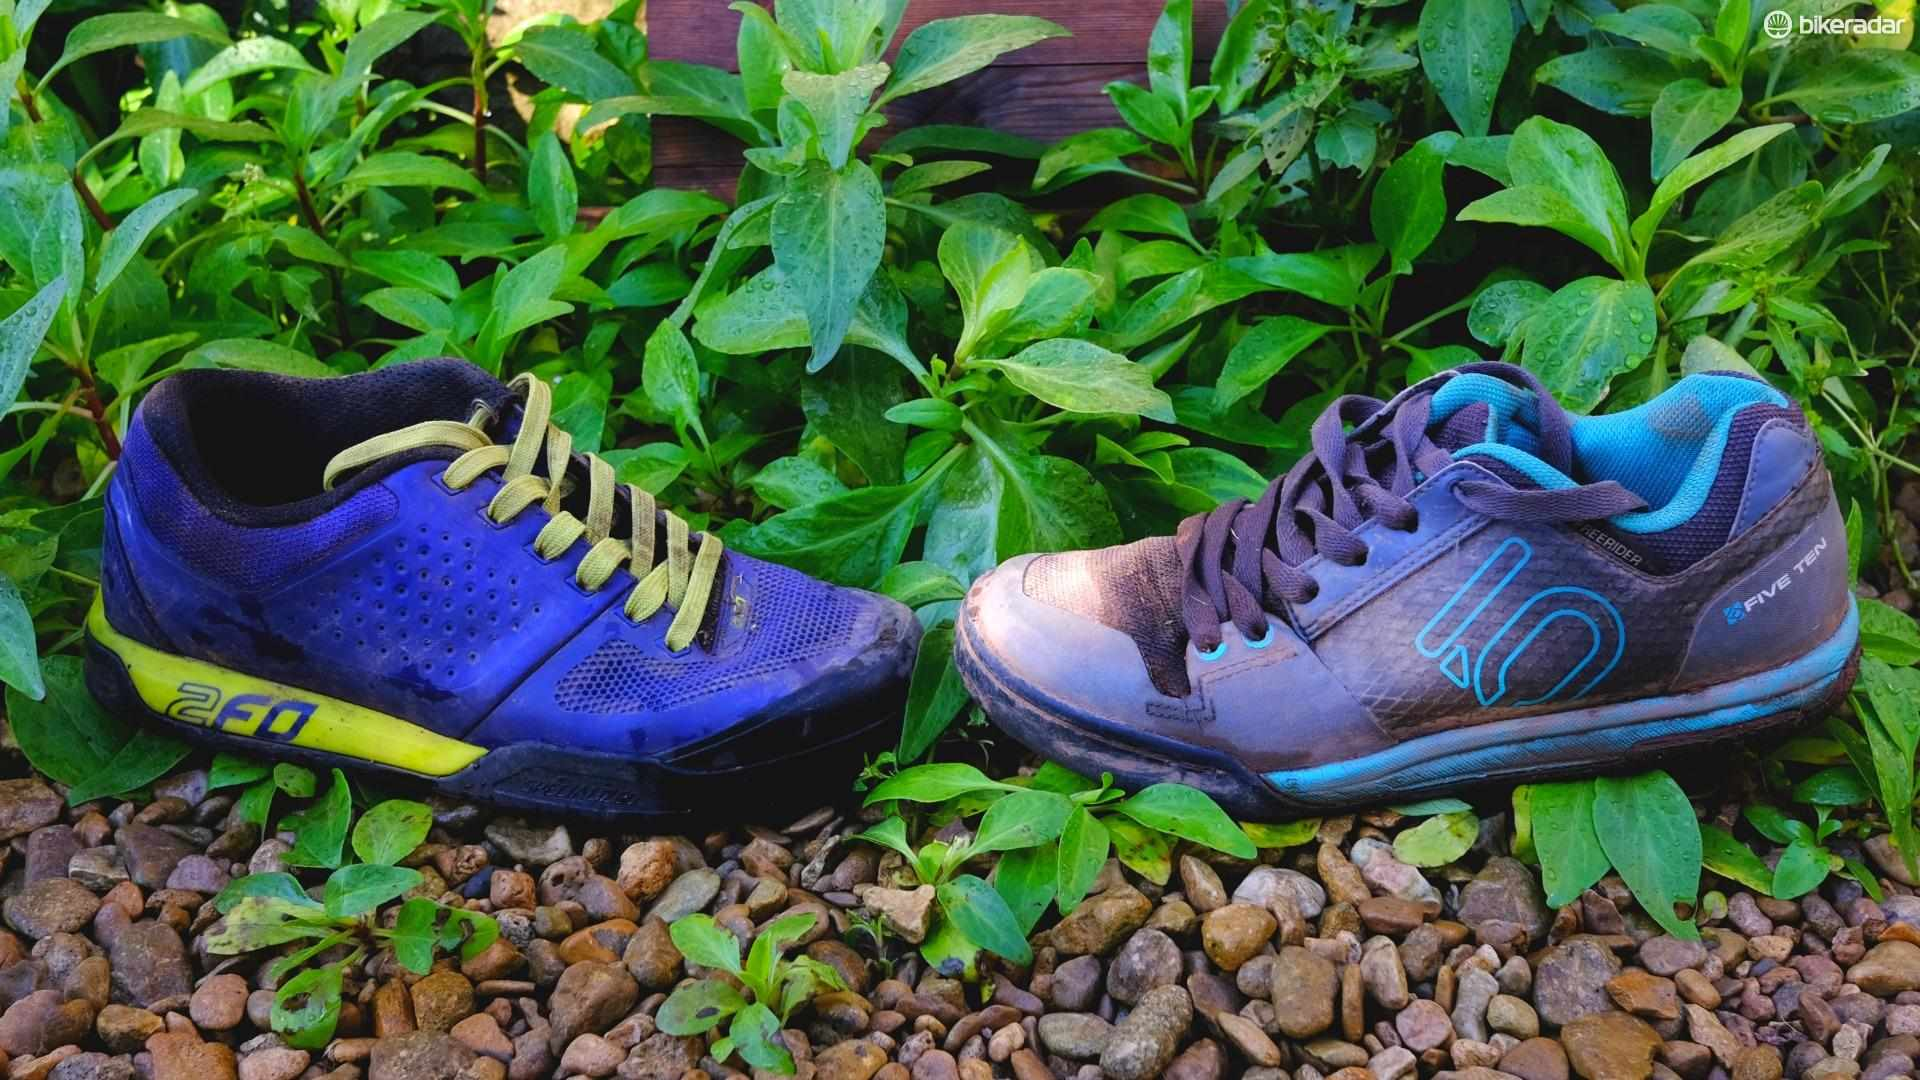 We put the women's Freerider Contact and Specialized 2FO flat pedal shoes to the test